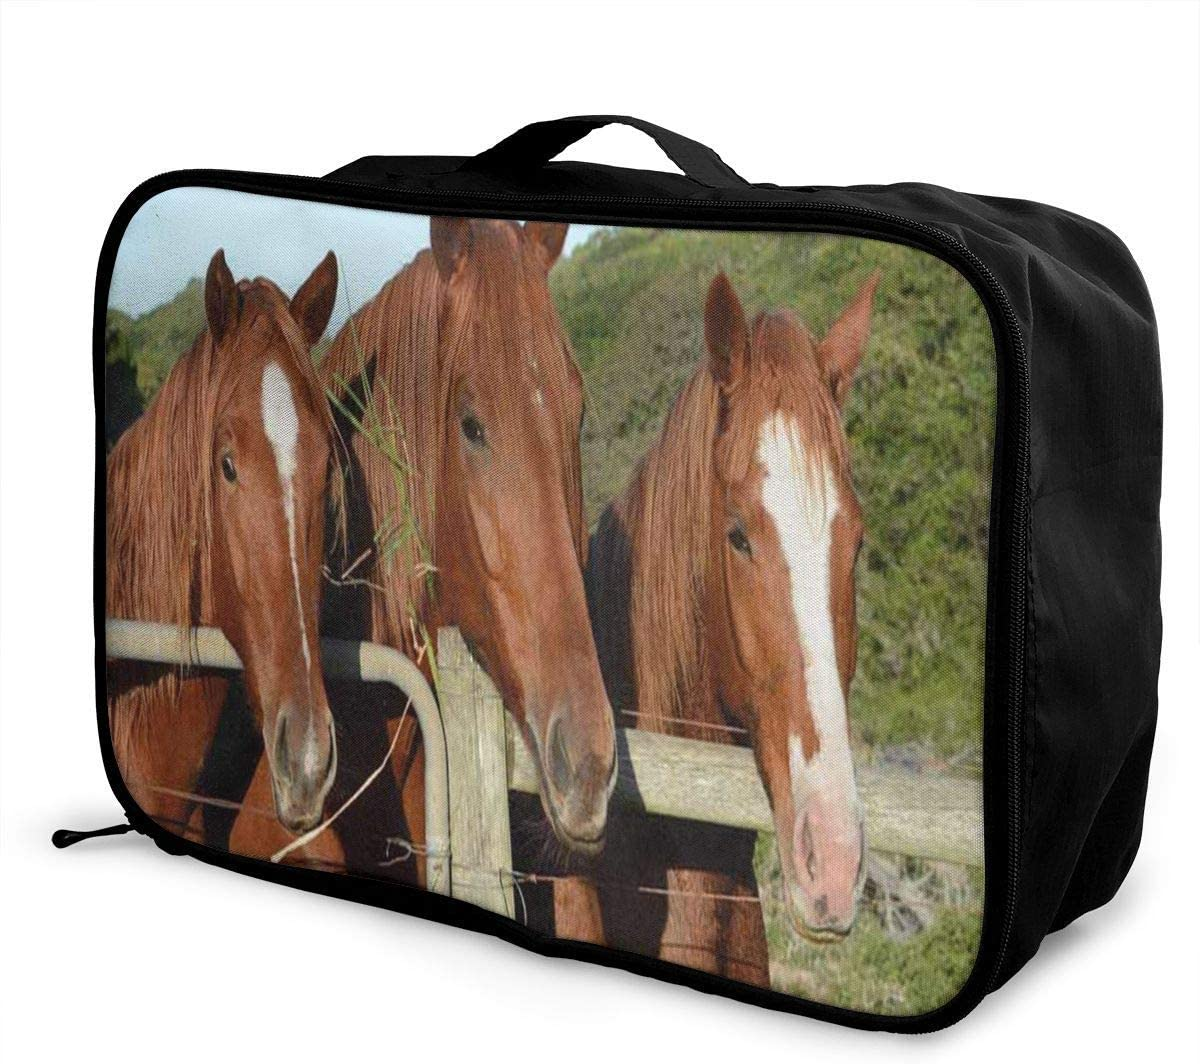 Travel Bags Three Chestnut Horses Portrait Portable Suitcase Trolley Handle Luggage Bag